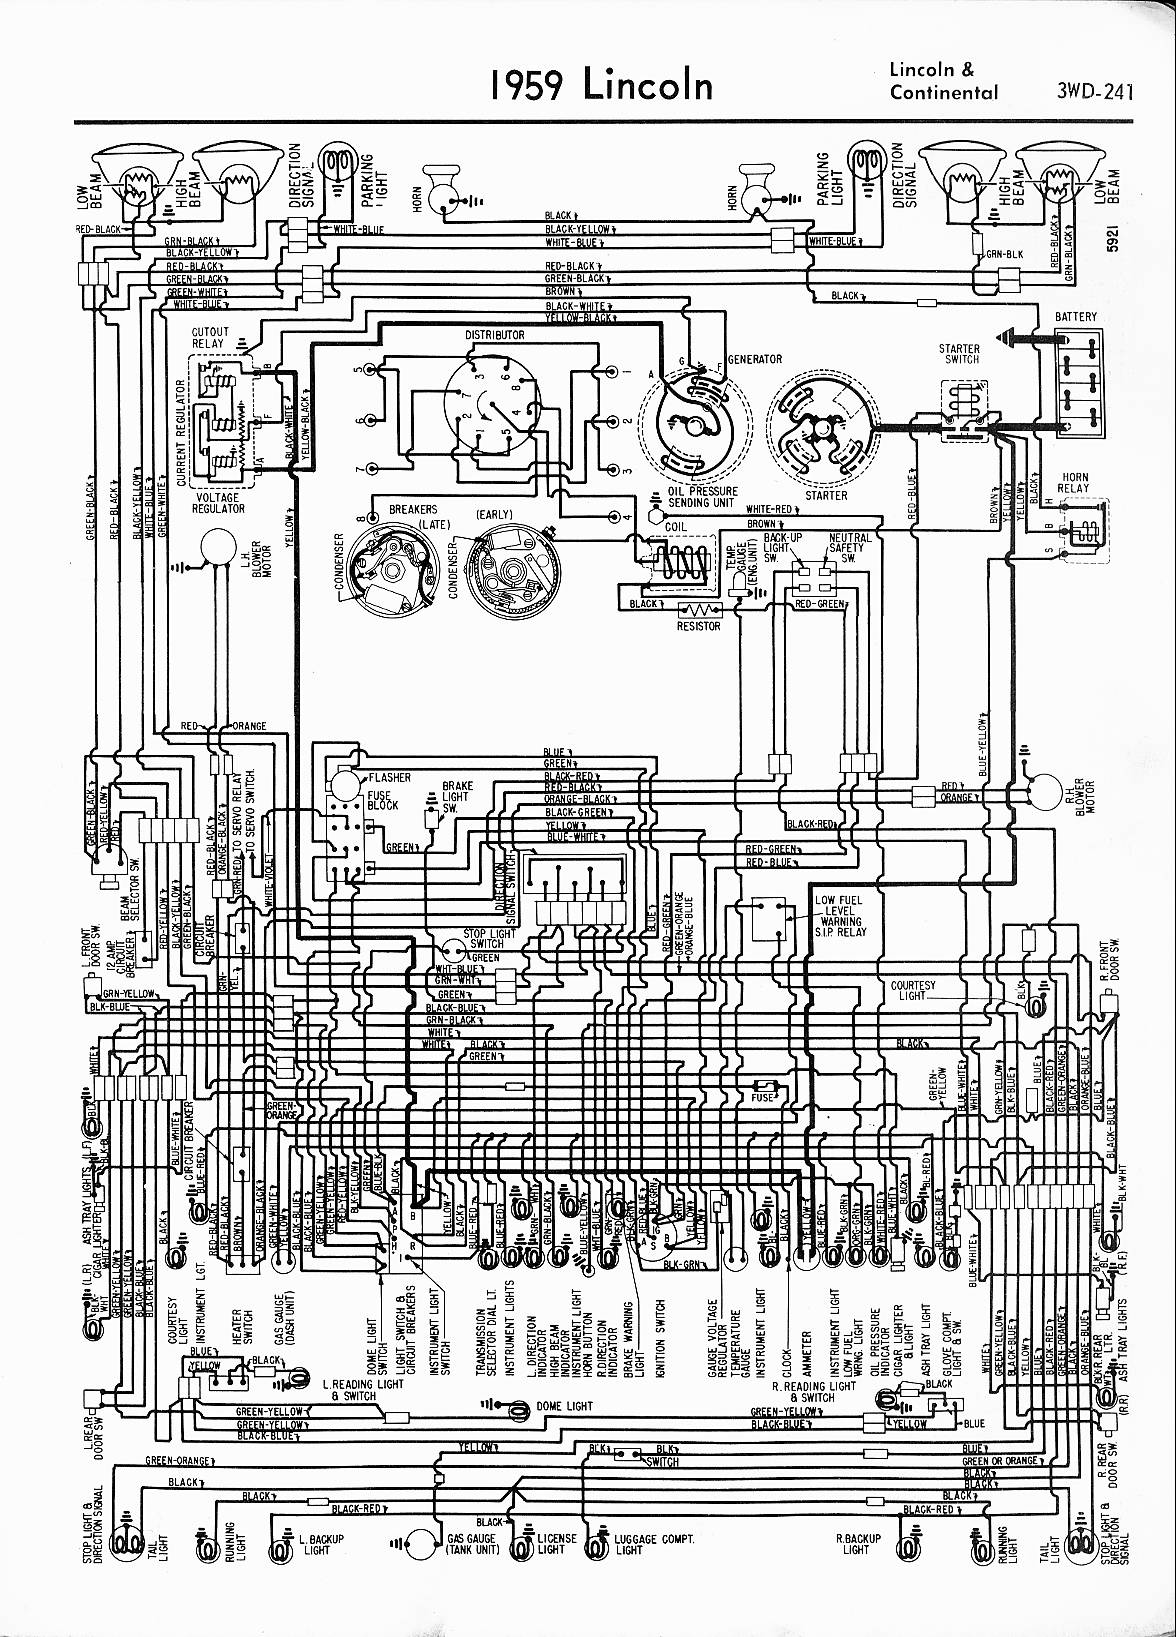 1968 Lincoln Fuse Box Wiring Diagram Data Nissan Sentra 1963 Schematic Name 1957 Continental Just